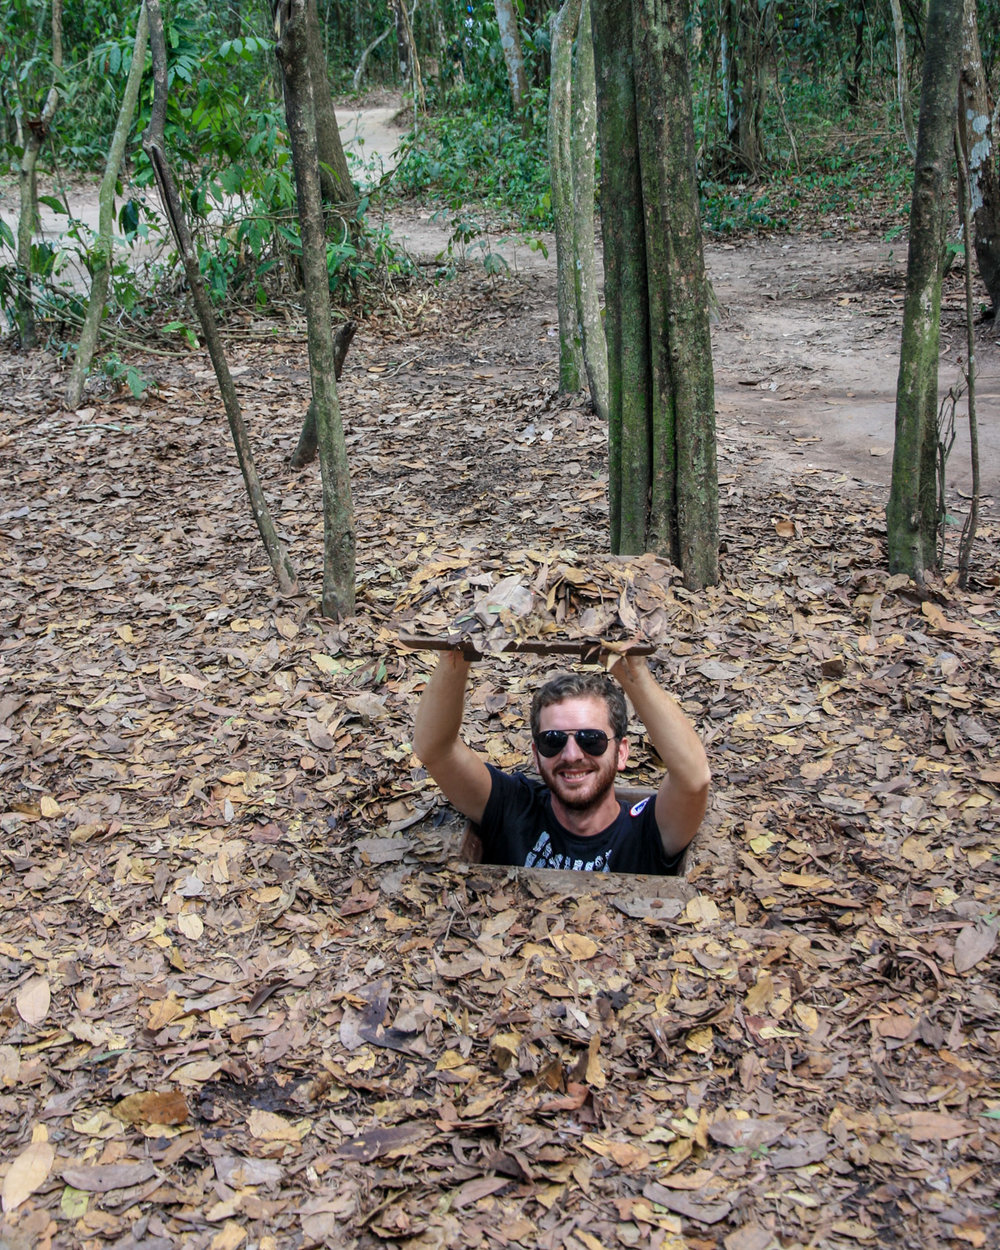 Demonstrating just how small those tunnels were for the Viet Cong!